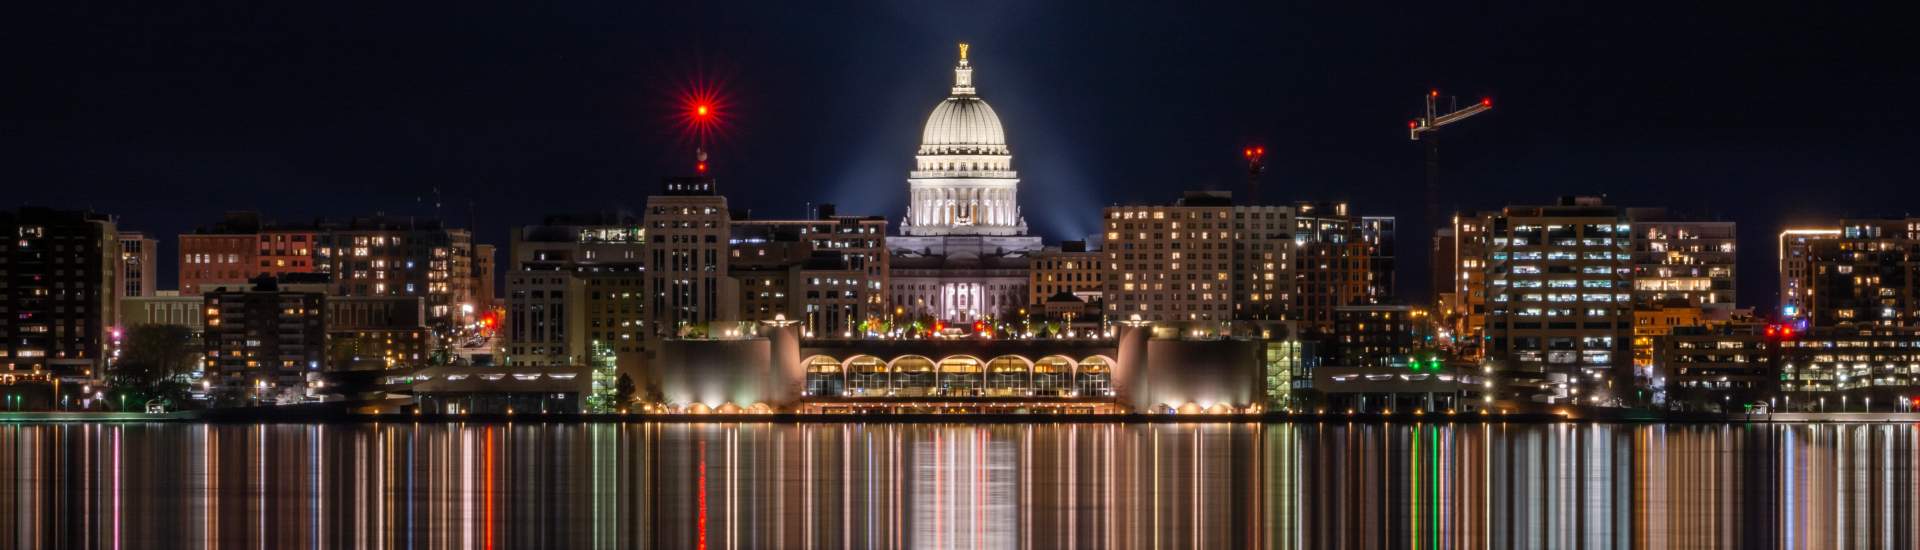 the wisconsin state capitol dome